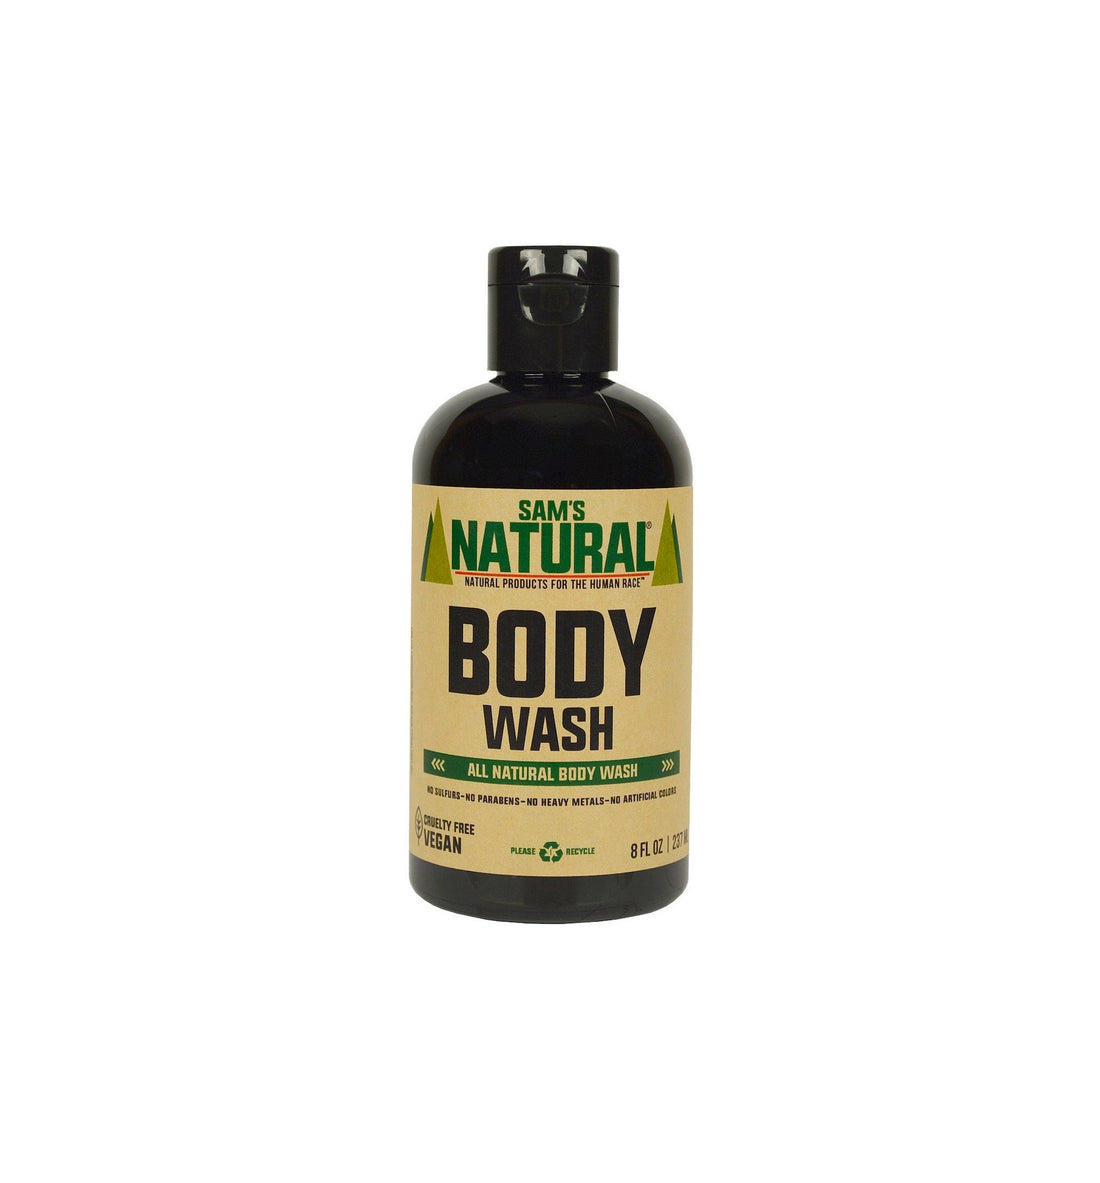 Sam's Natural Body Wash - Grooming - Iron and Resin